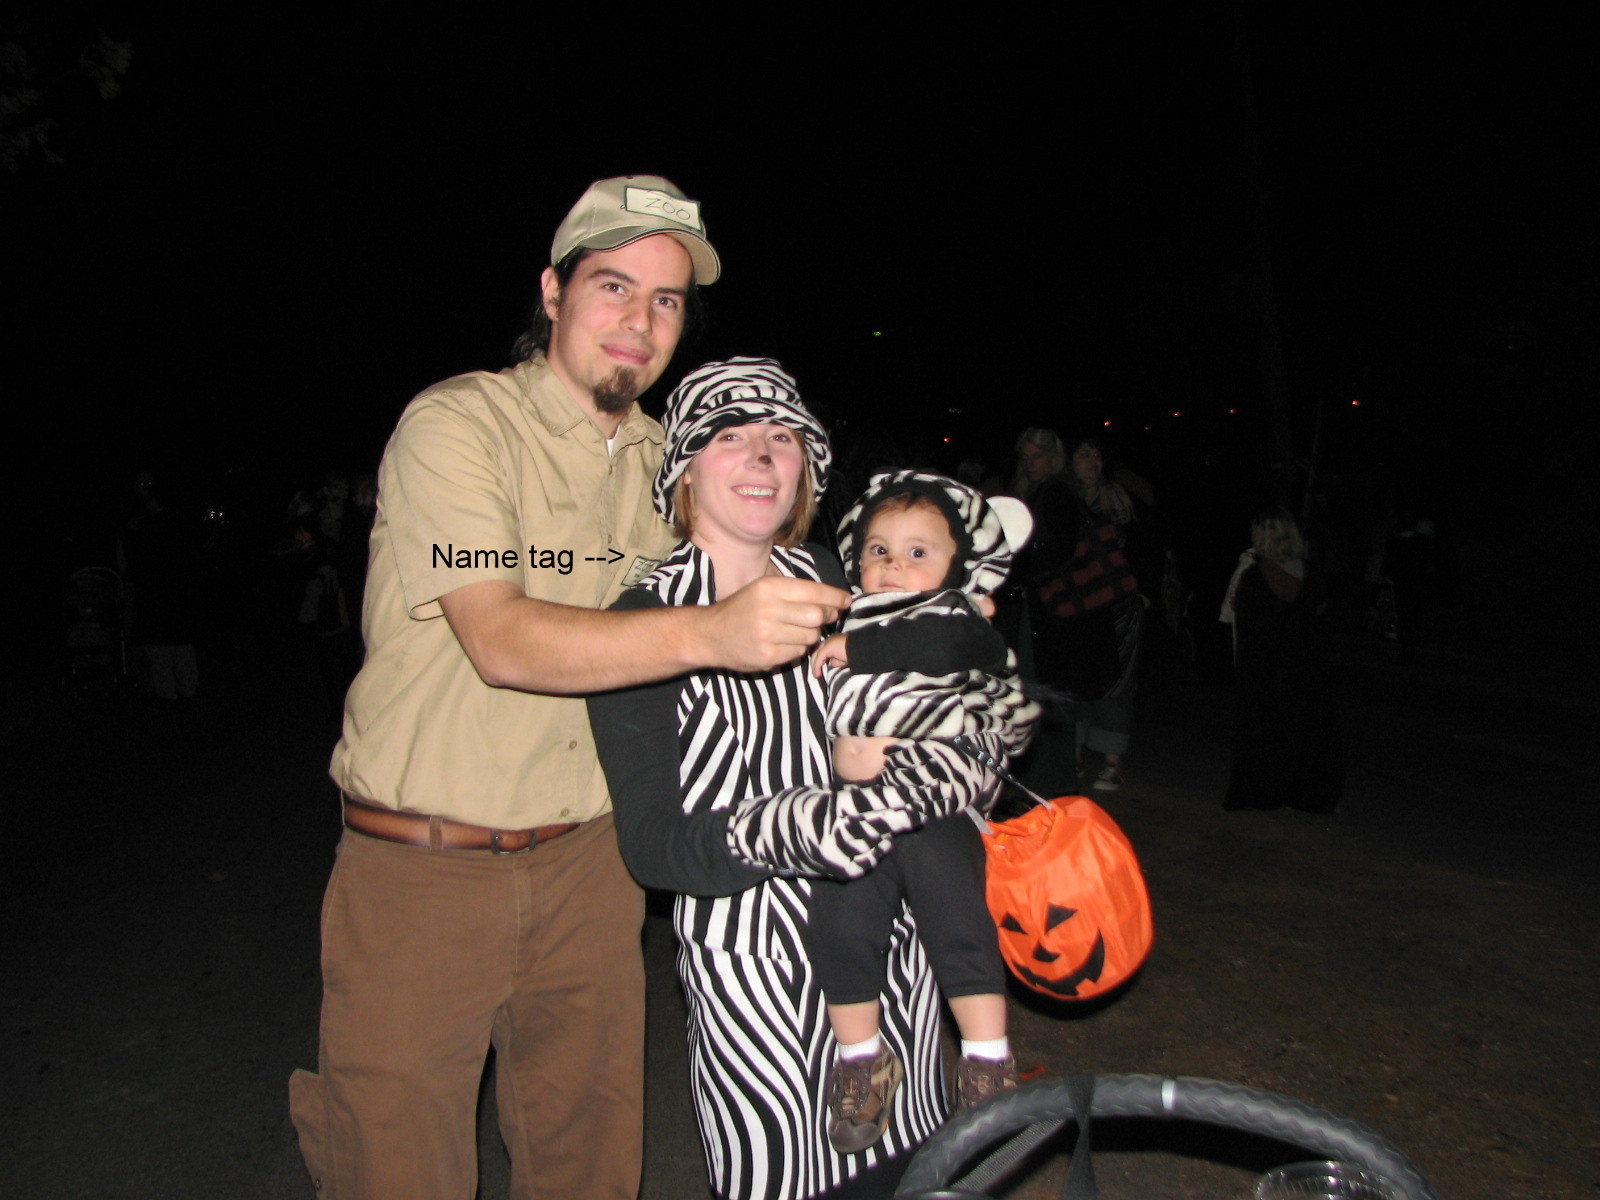 Birthing me last minute kid and family halloween costumes last minute kid and family halloween costumes solutioingenieria Images